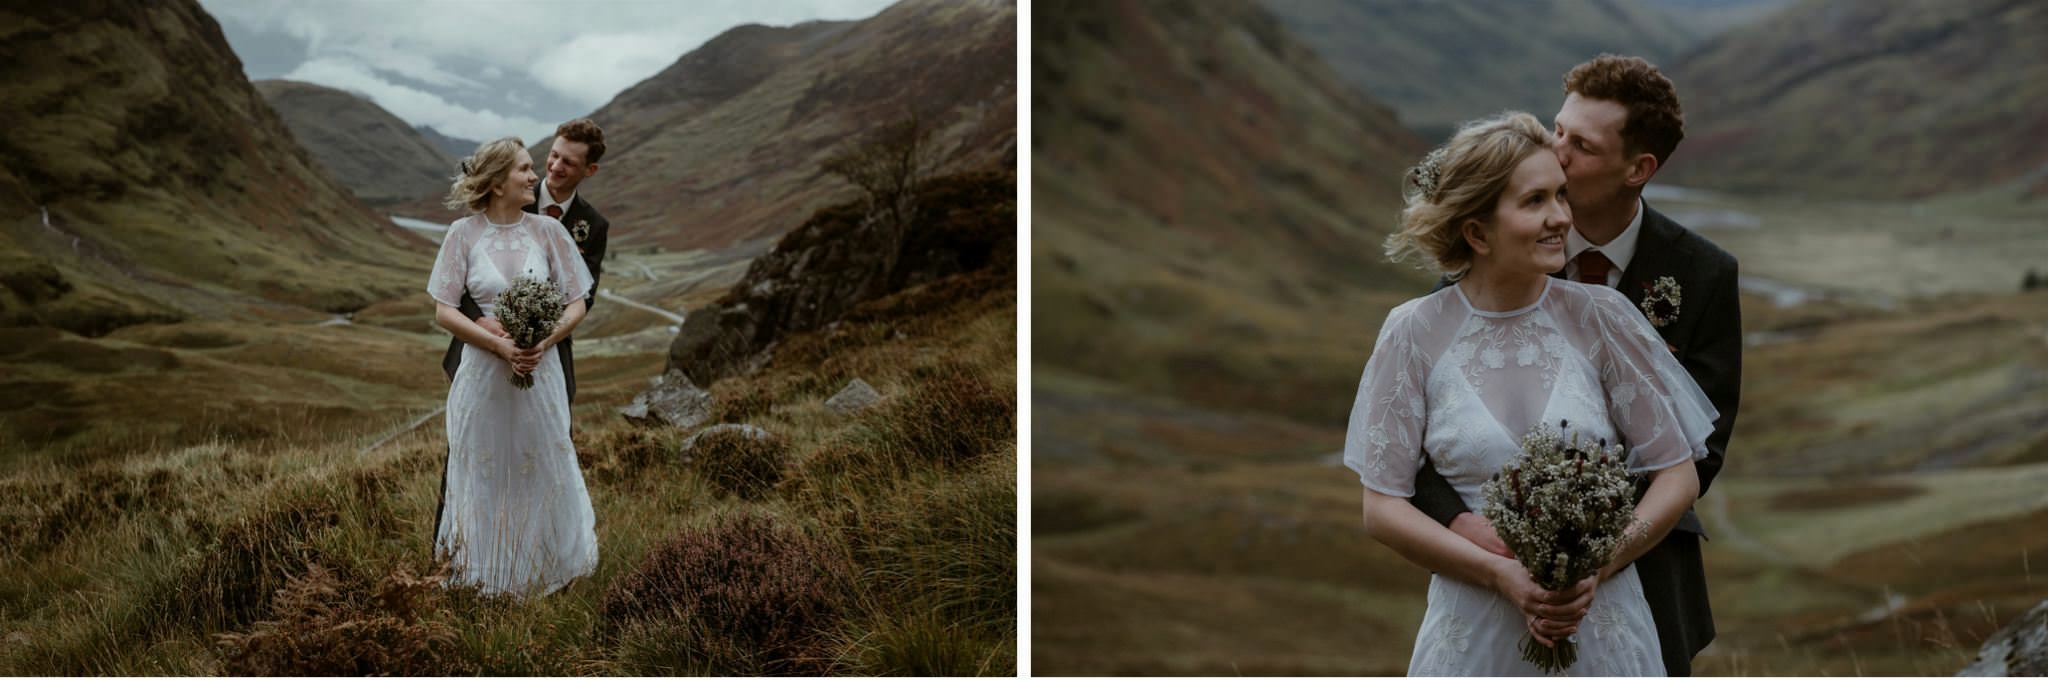 Bride and groom embrace at their elopement in Glencoe, Scottish Highlands